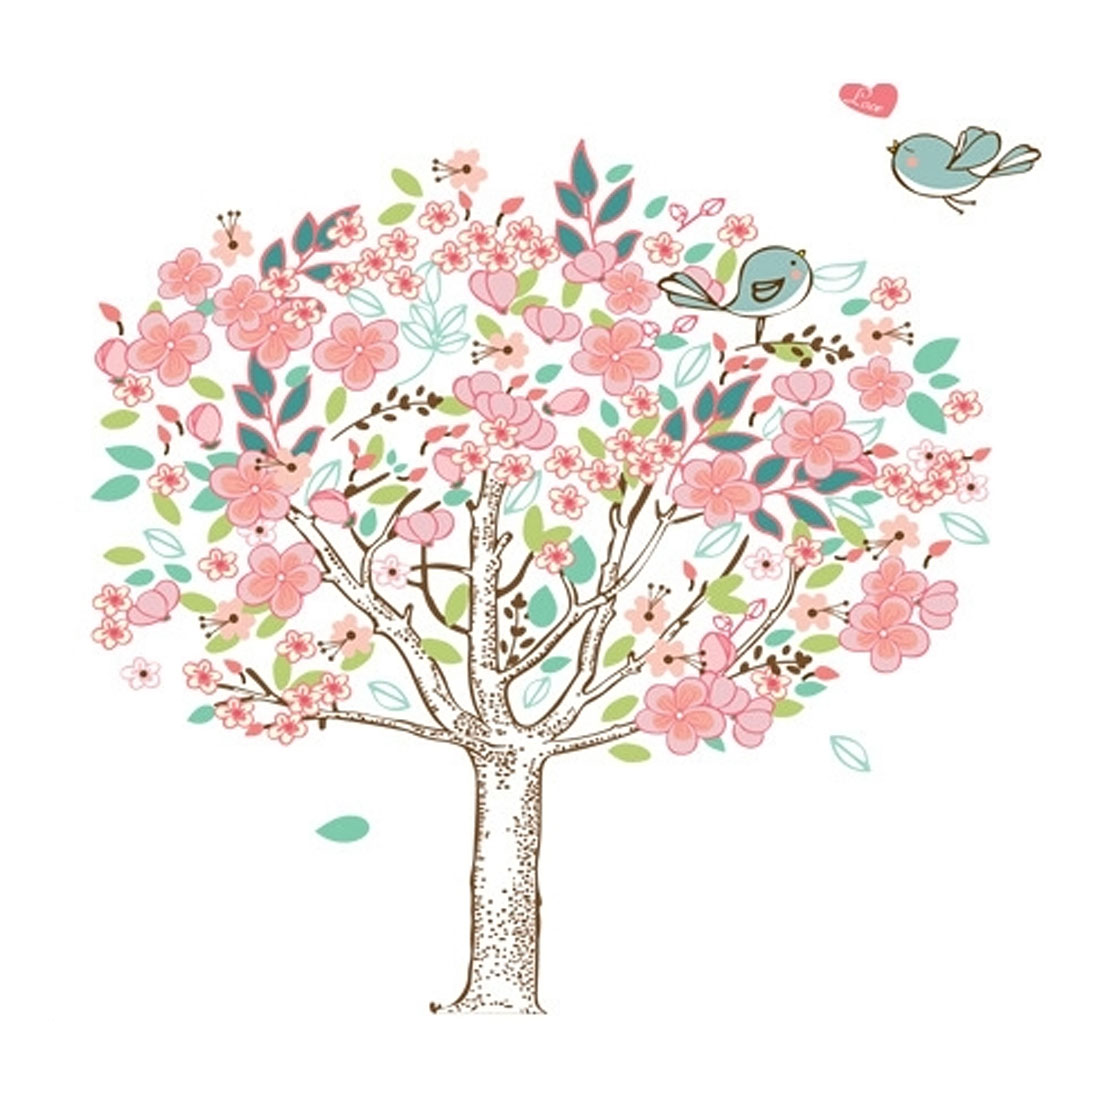 Drawing Room Flower Tree Bird  Removable Wall Sticker Decal Wallpaper